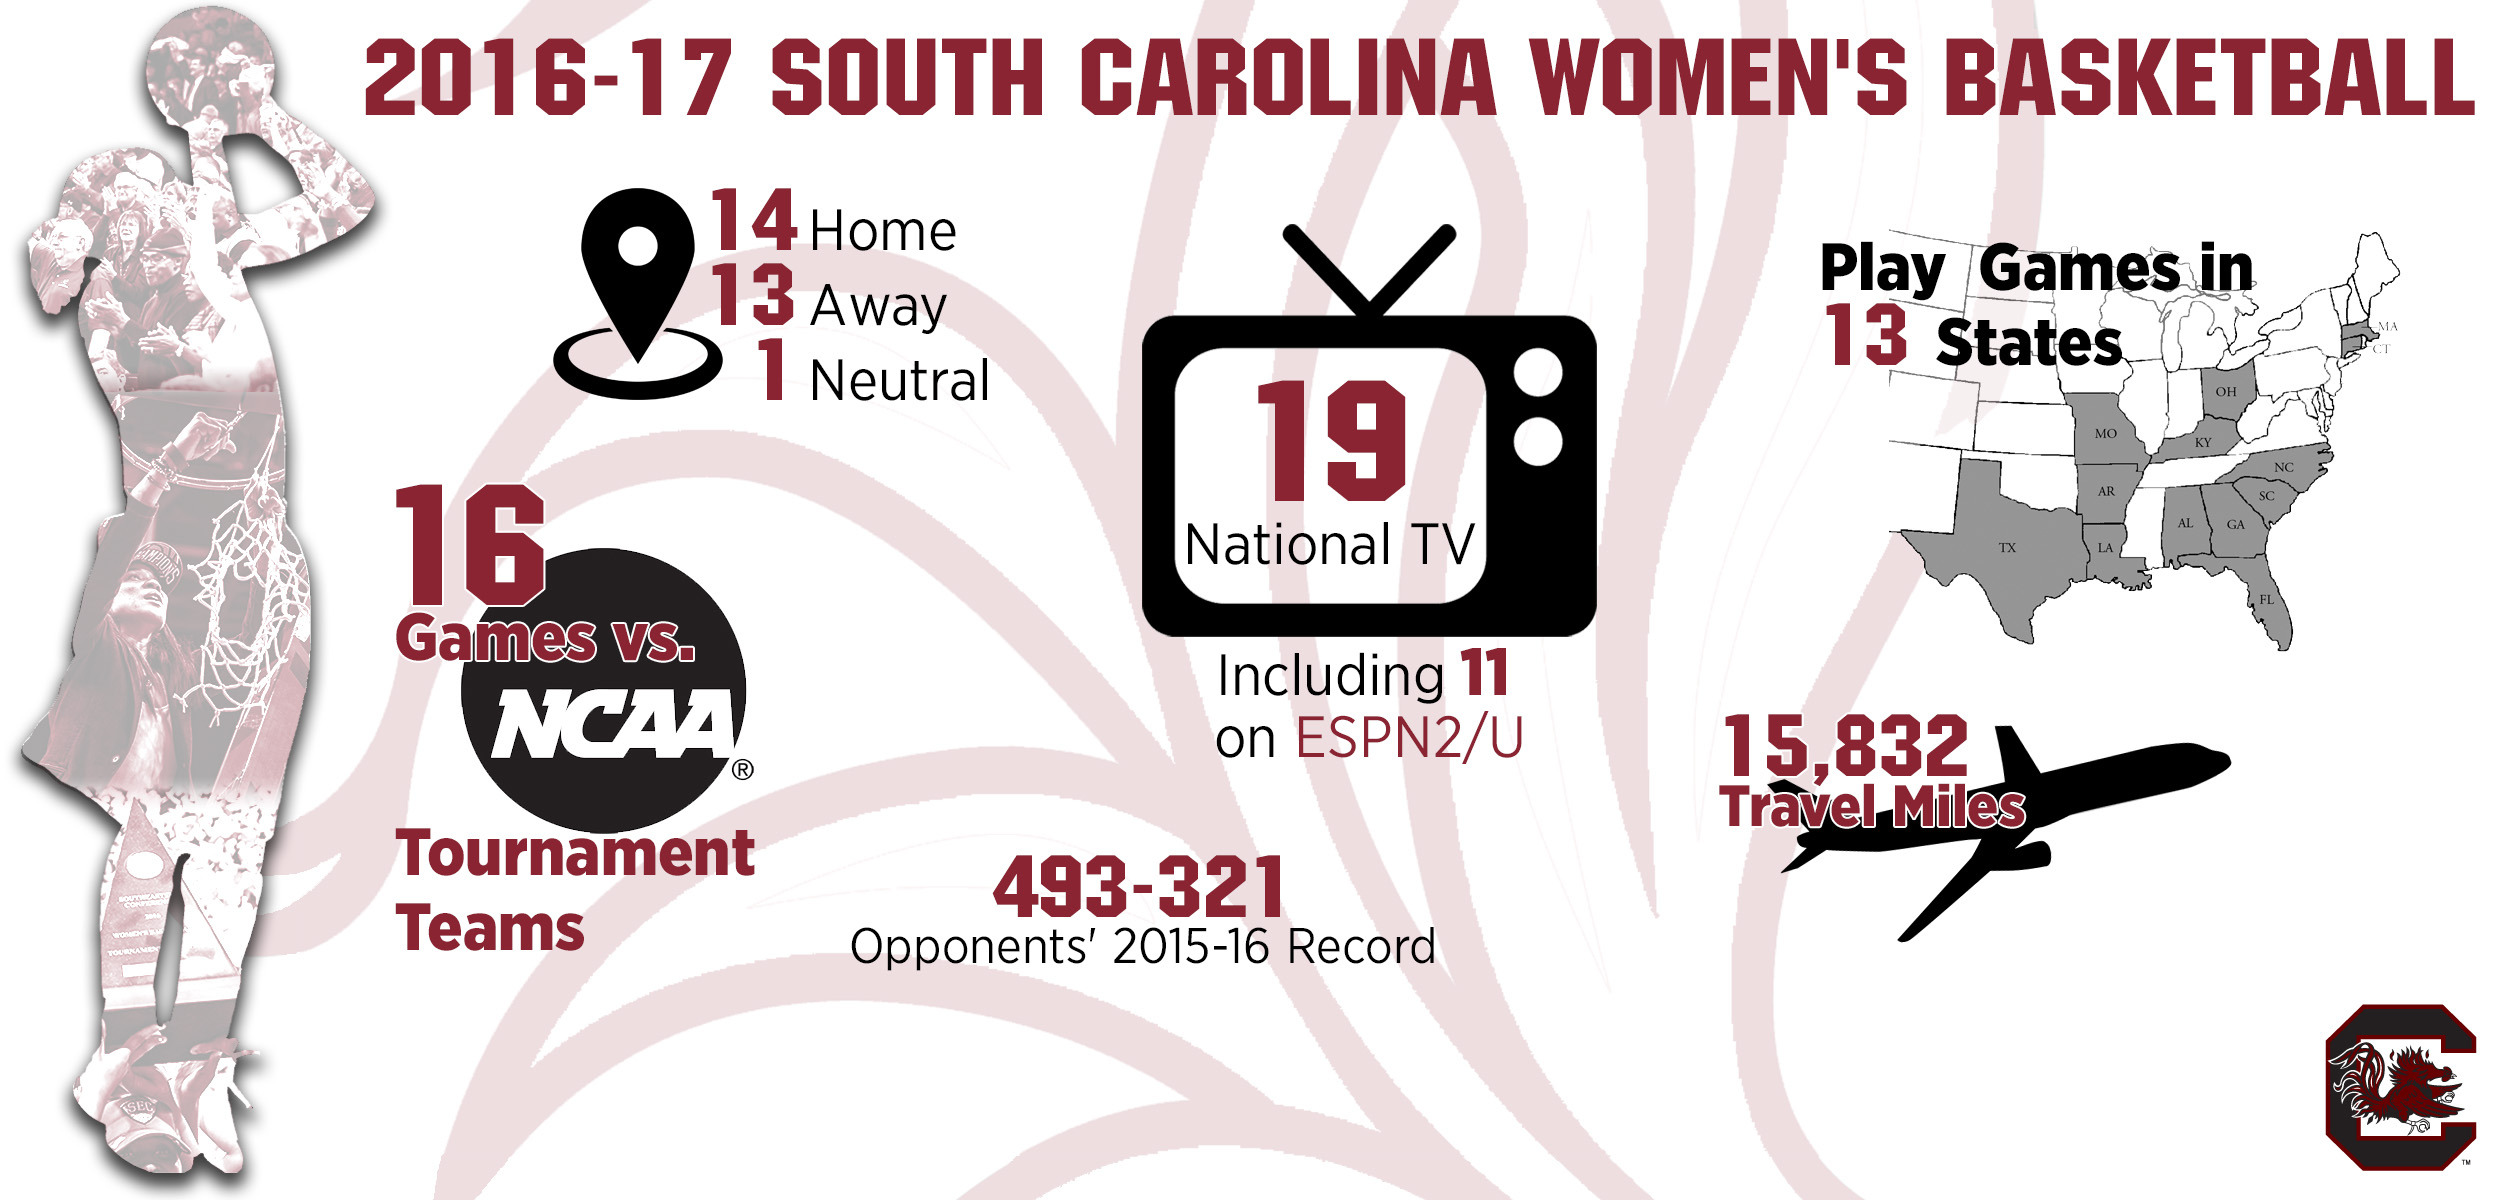 gamecock schedule features 19 national tv games - university of